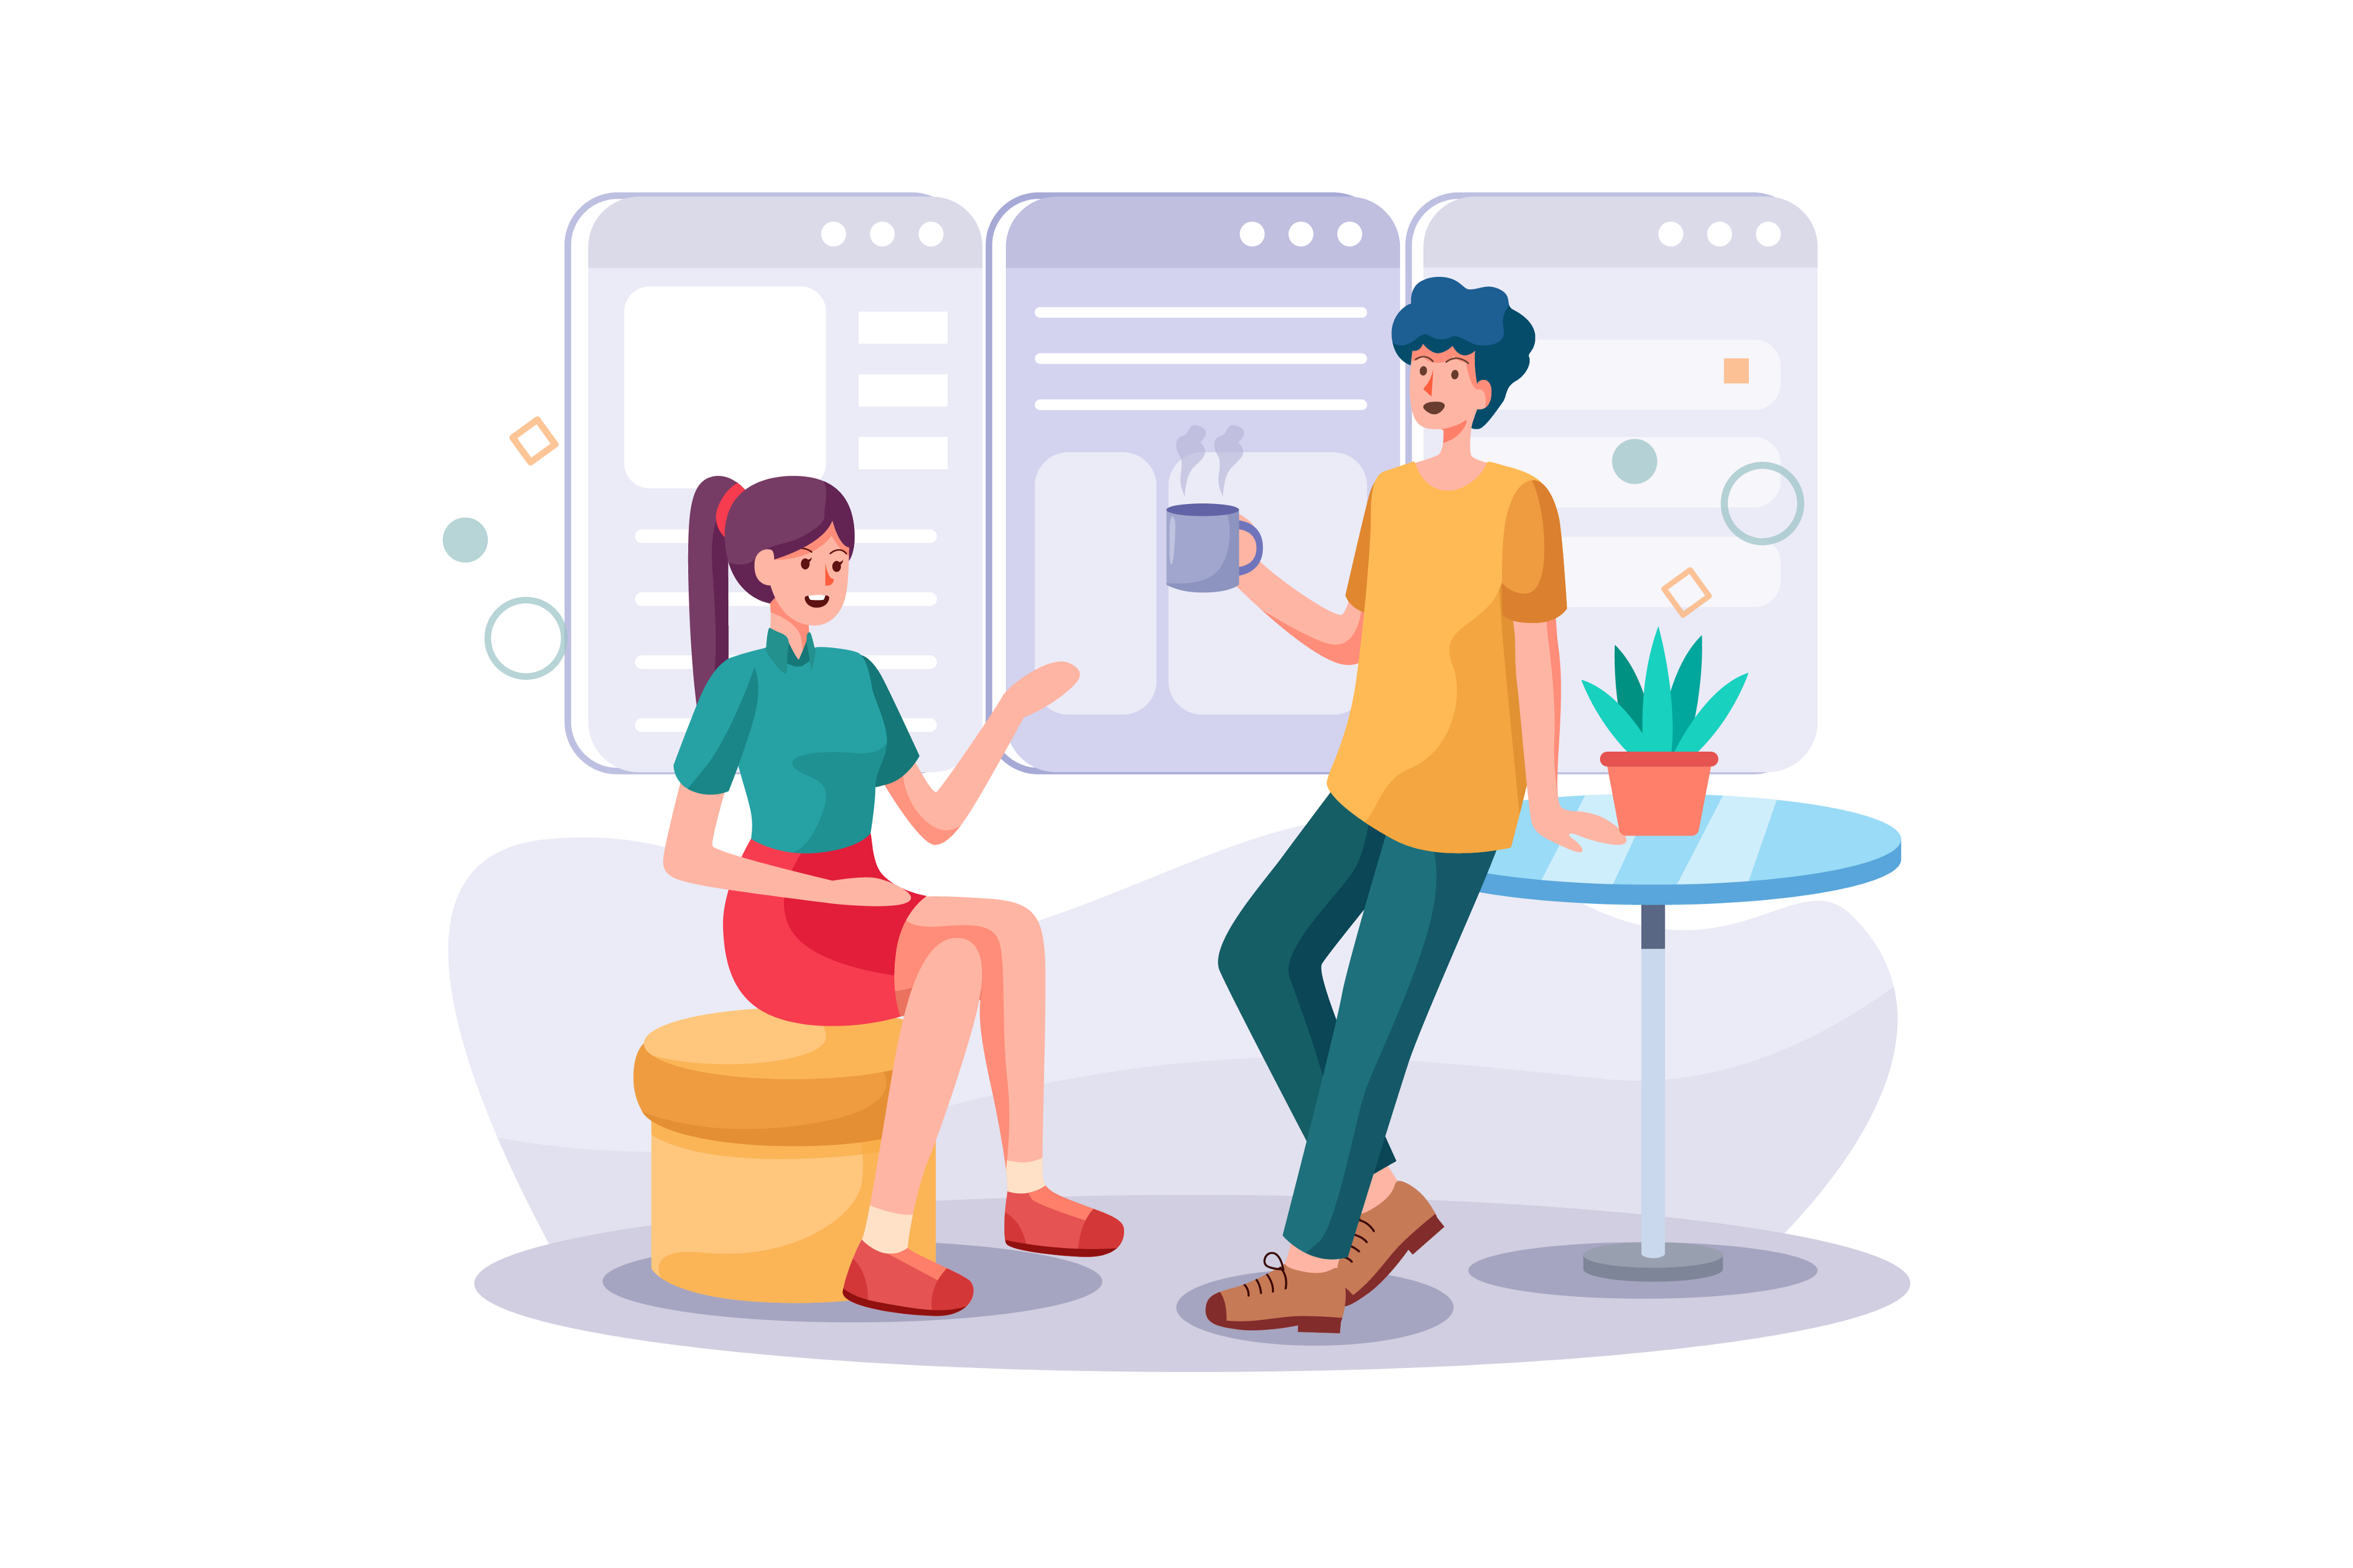 Illustration of two people chatting and collaborating over coffee